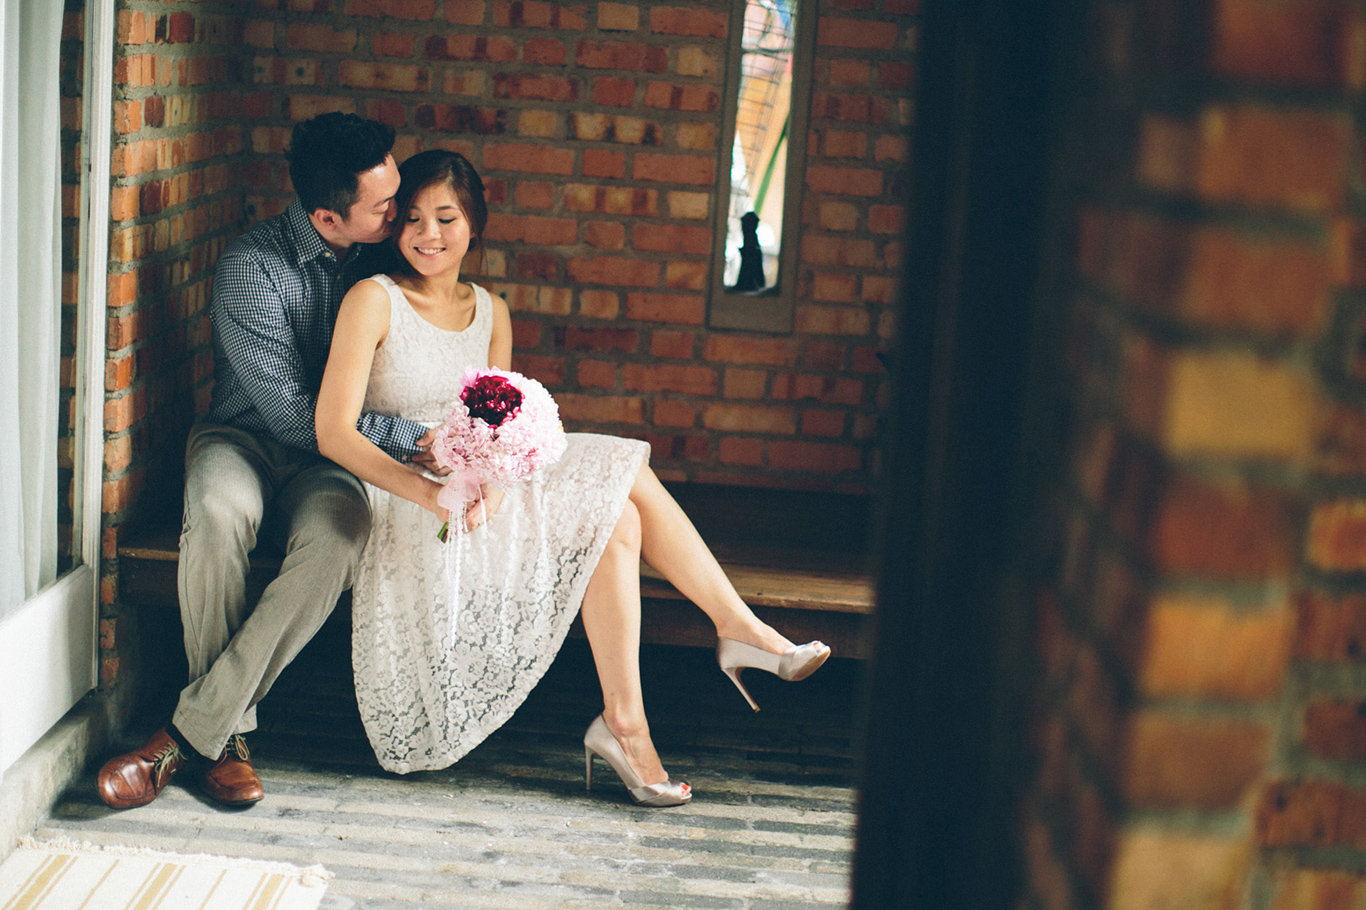 7-hellojanelee-nicolejustin-sekeping-tenggiri-bangsar-wedding-love